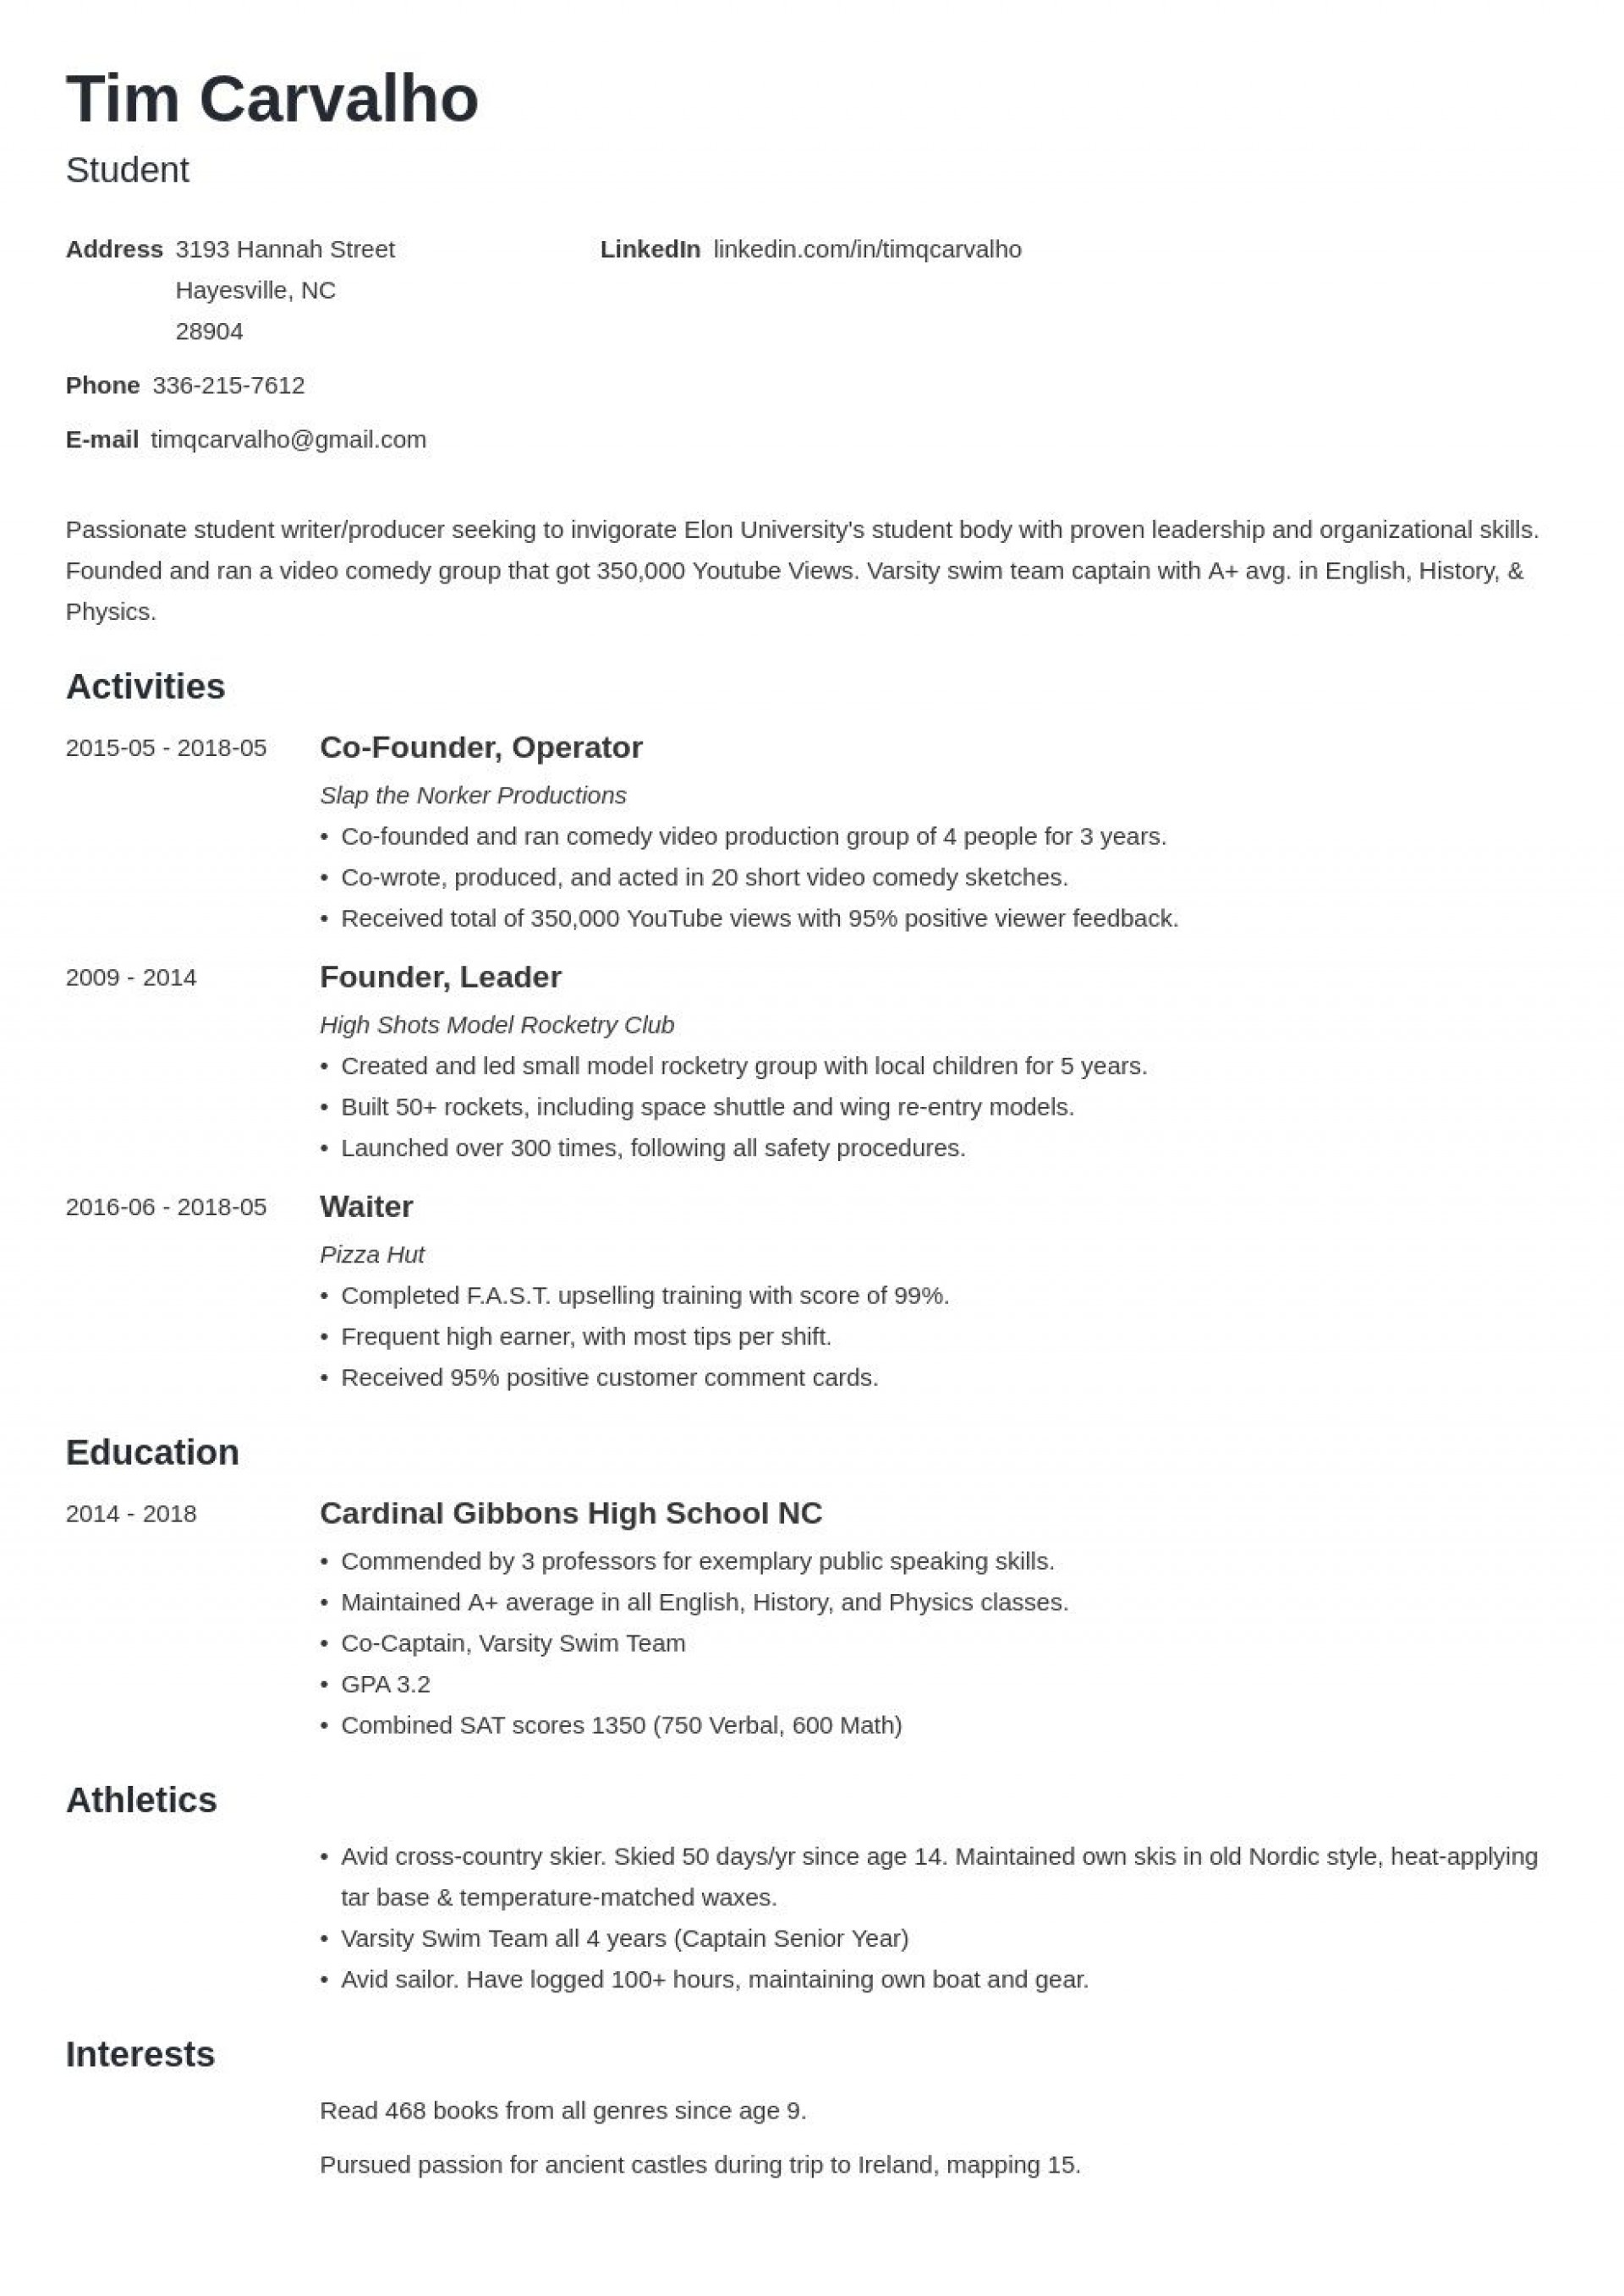 005 Formidable Resume For College Application Template Idea  Templates1920